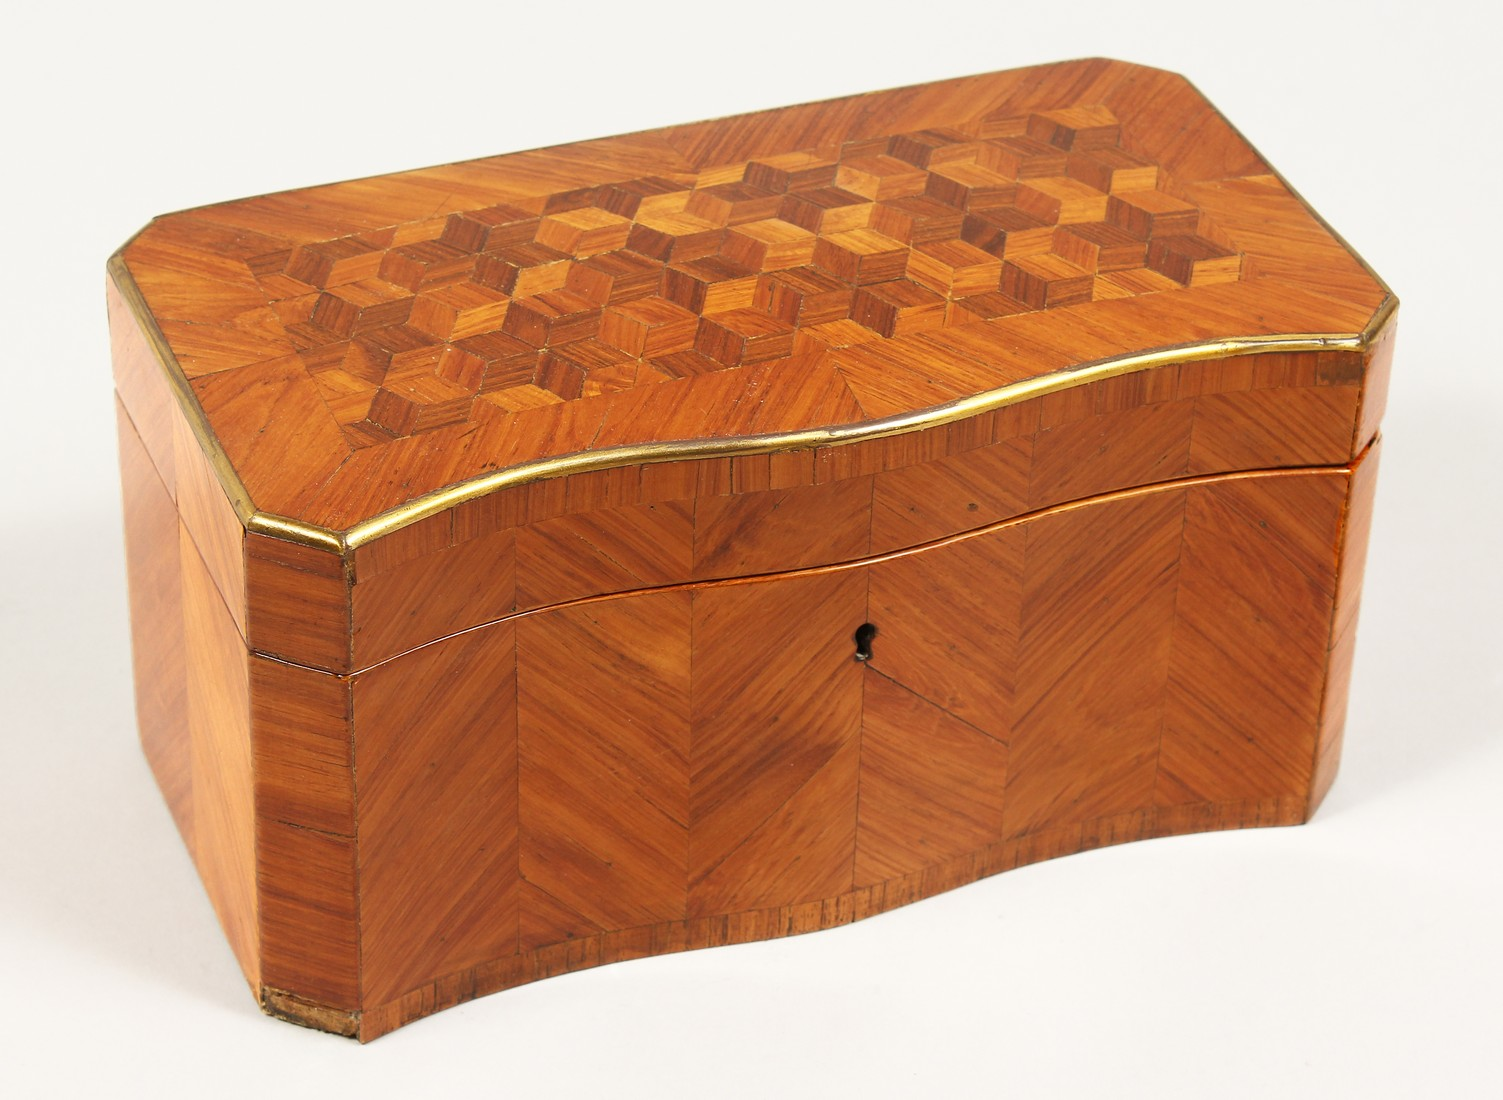 A 19TH CENTURY FRENCH KINGWOOD SERPENTINE-FRONTED TWO DIVISION TEA CADDY with Van Dyck pattern